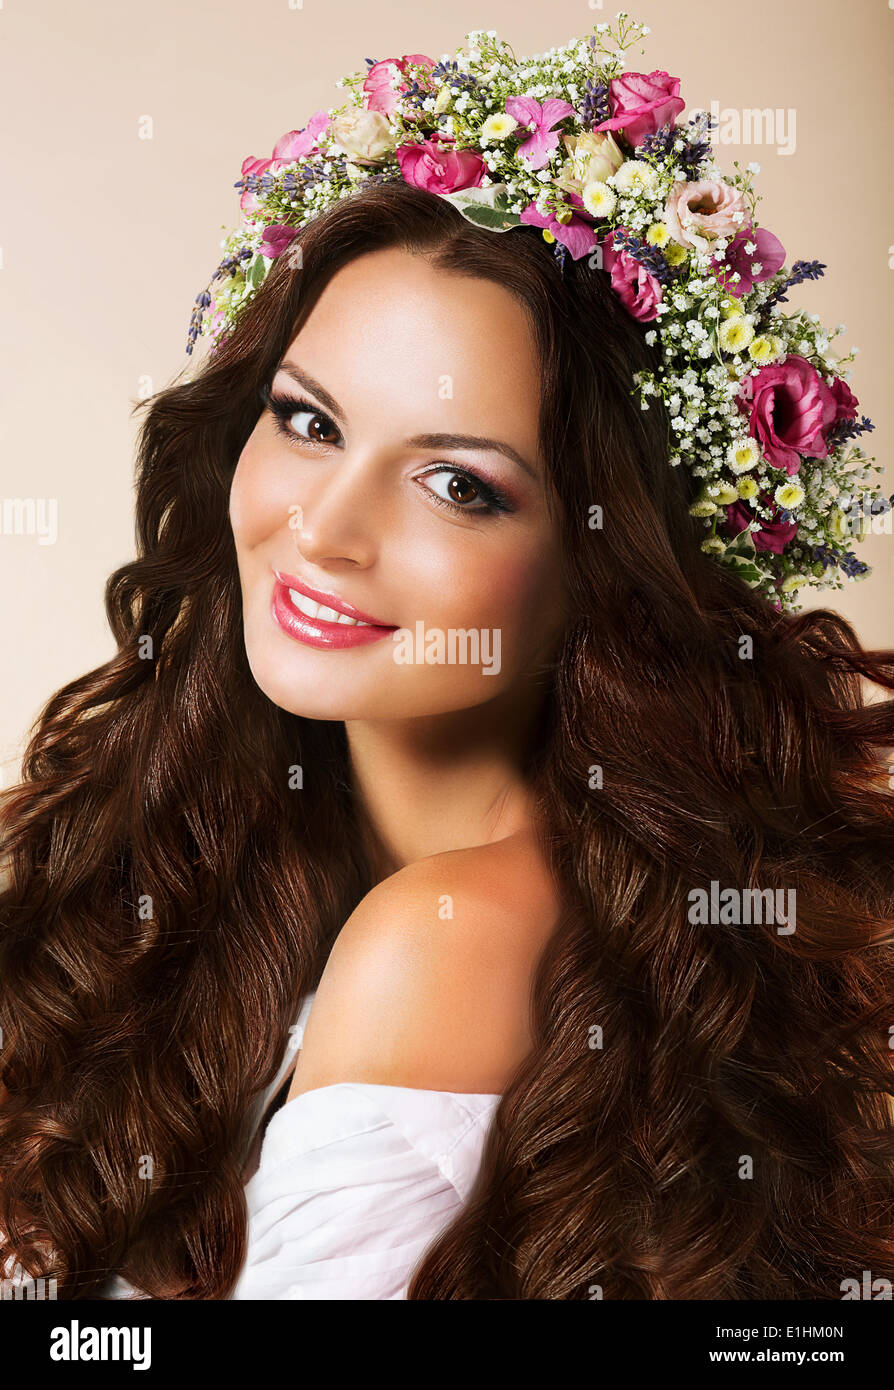 Genuine Young Woman with Flowing Healthy Hairs and Wreath of Flowers - Stock Image